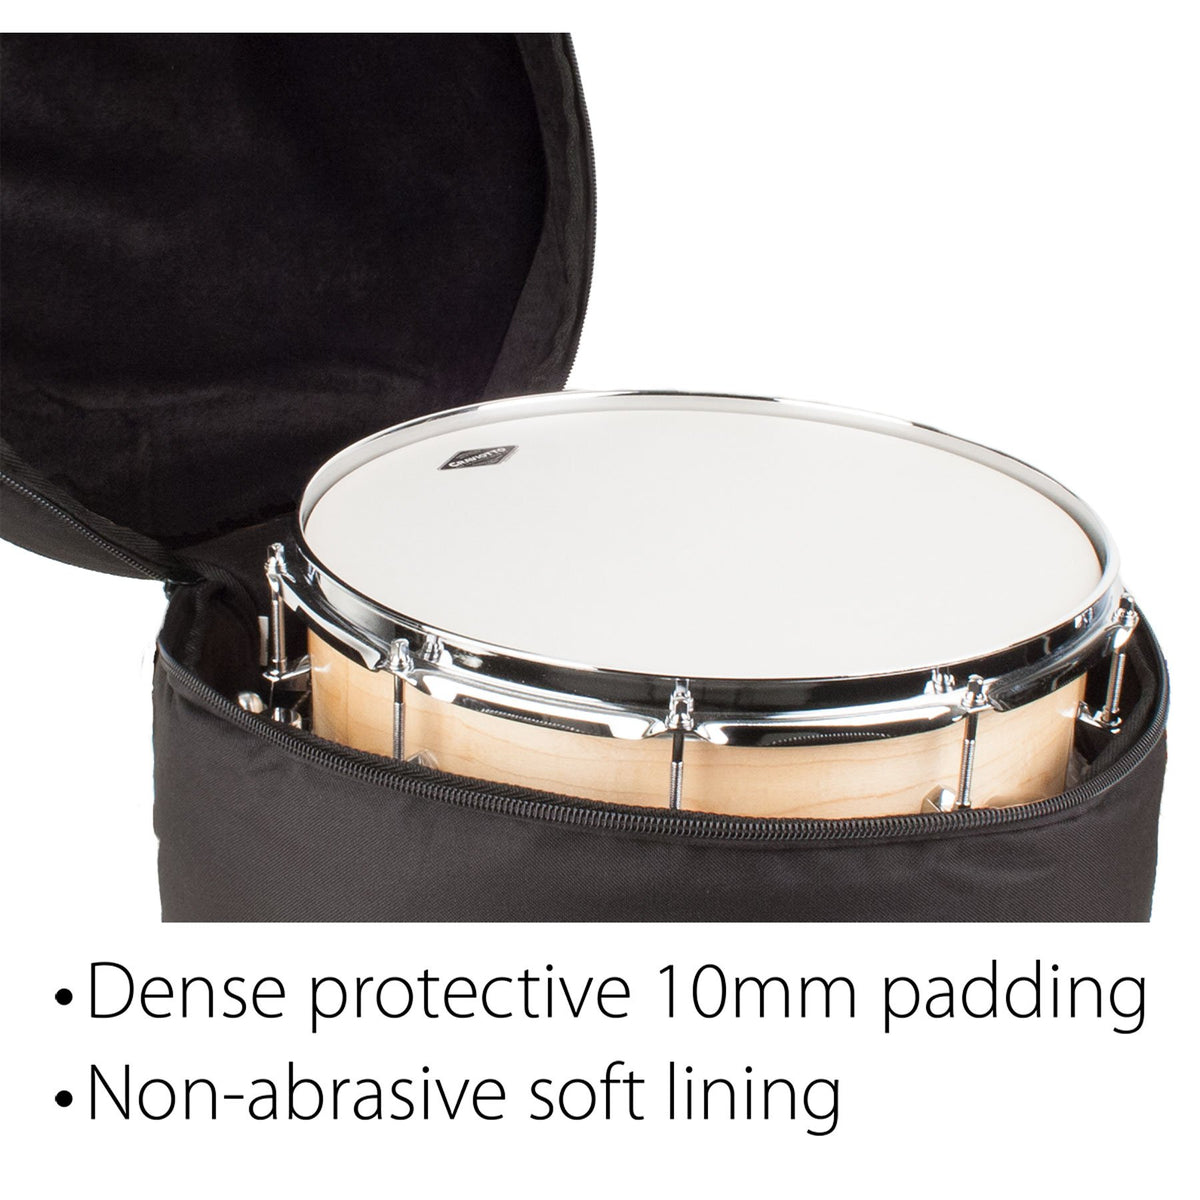 Protec - Padded Kick Drum Bag 18″ X 22″ (Heavy Ready Series)-Percussion-Protec-Music Elements